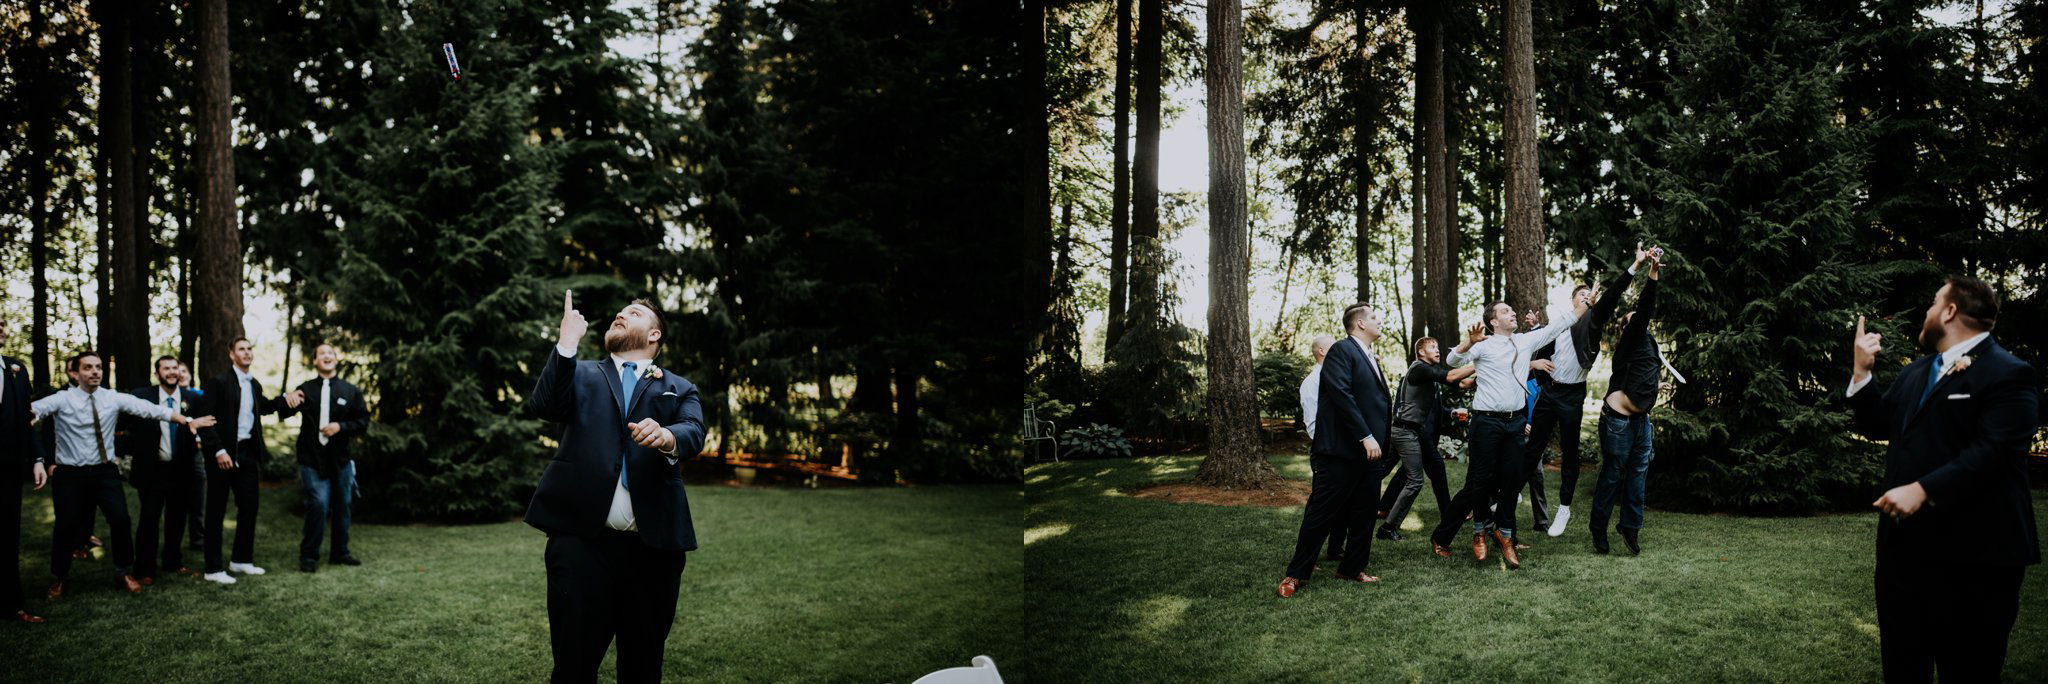 evergreen-gardens-bellingham-wedding-seattle-photographer-caitlyn-nikula-106.jpg